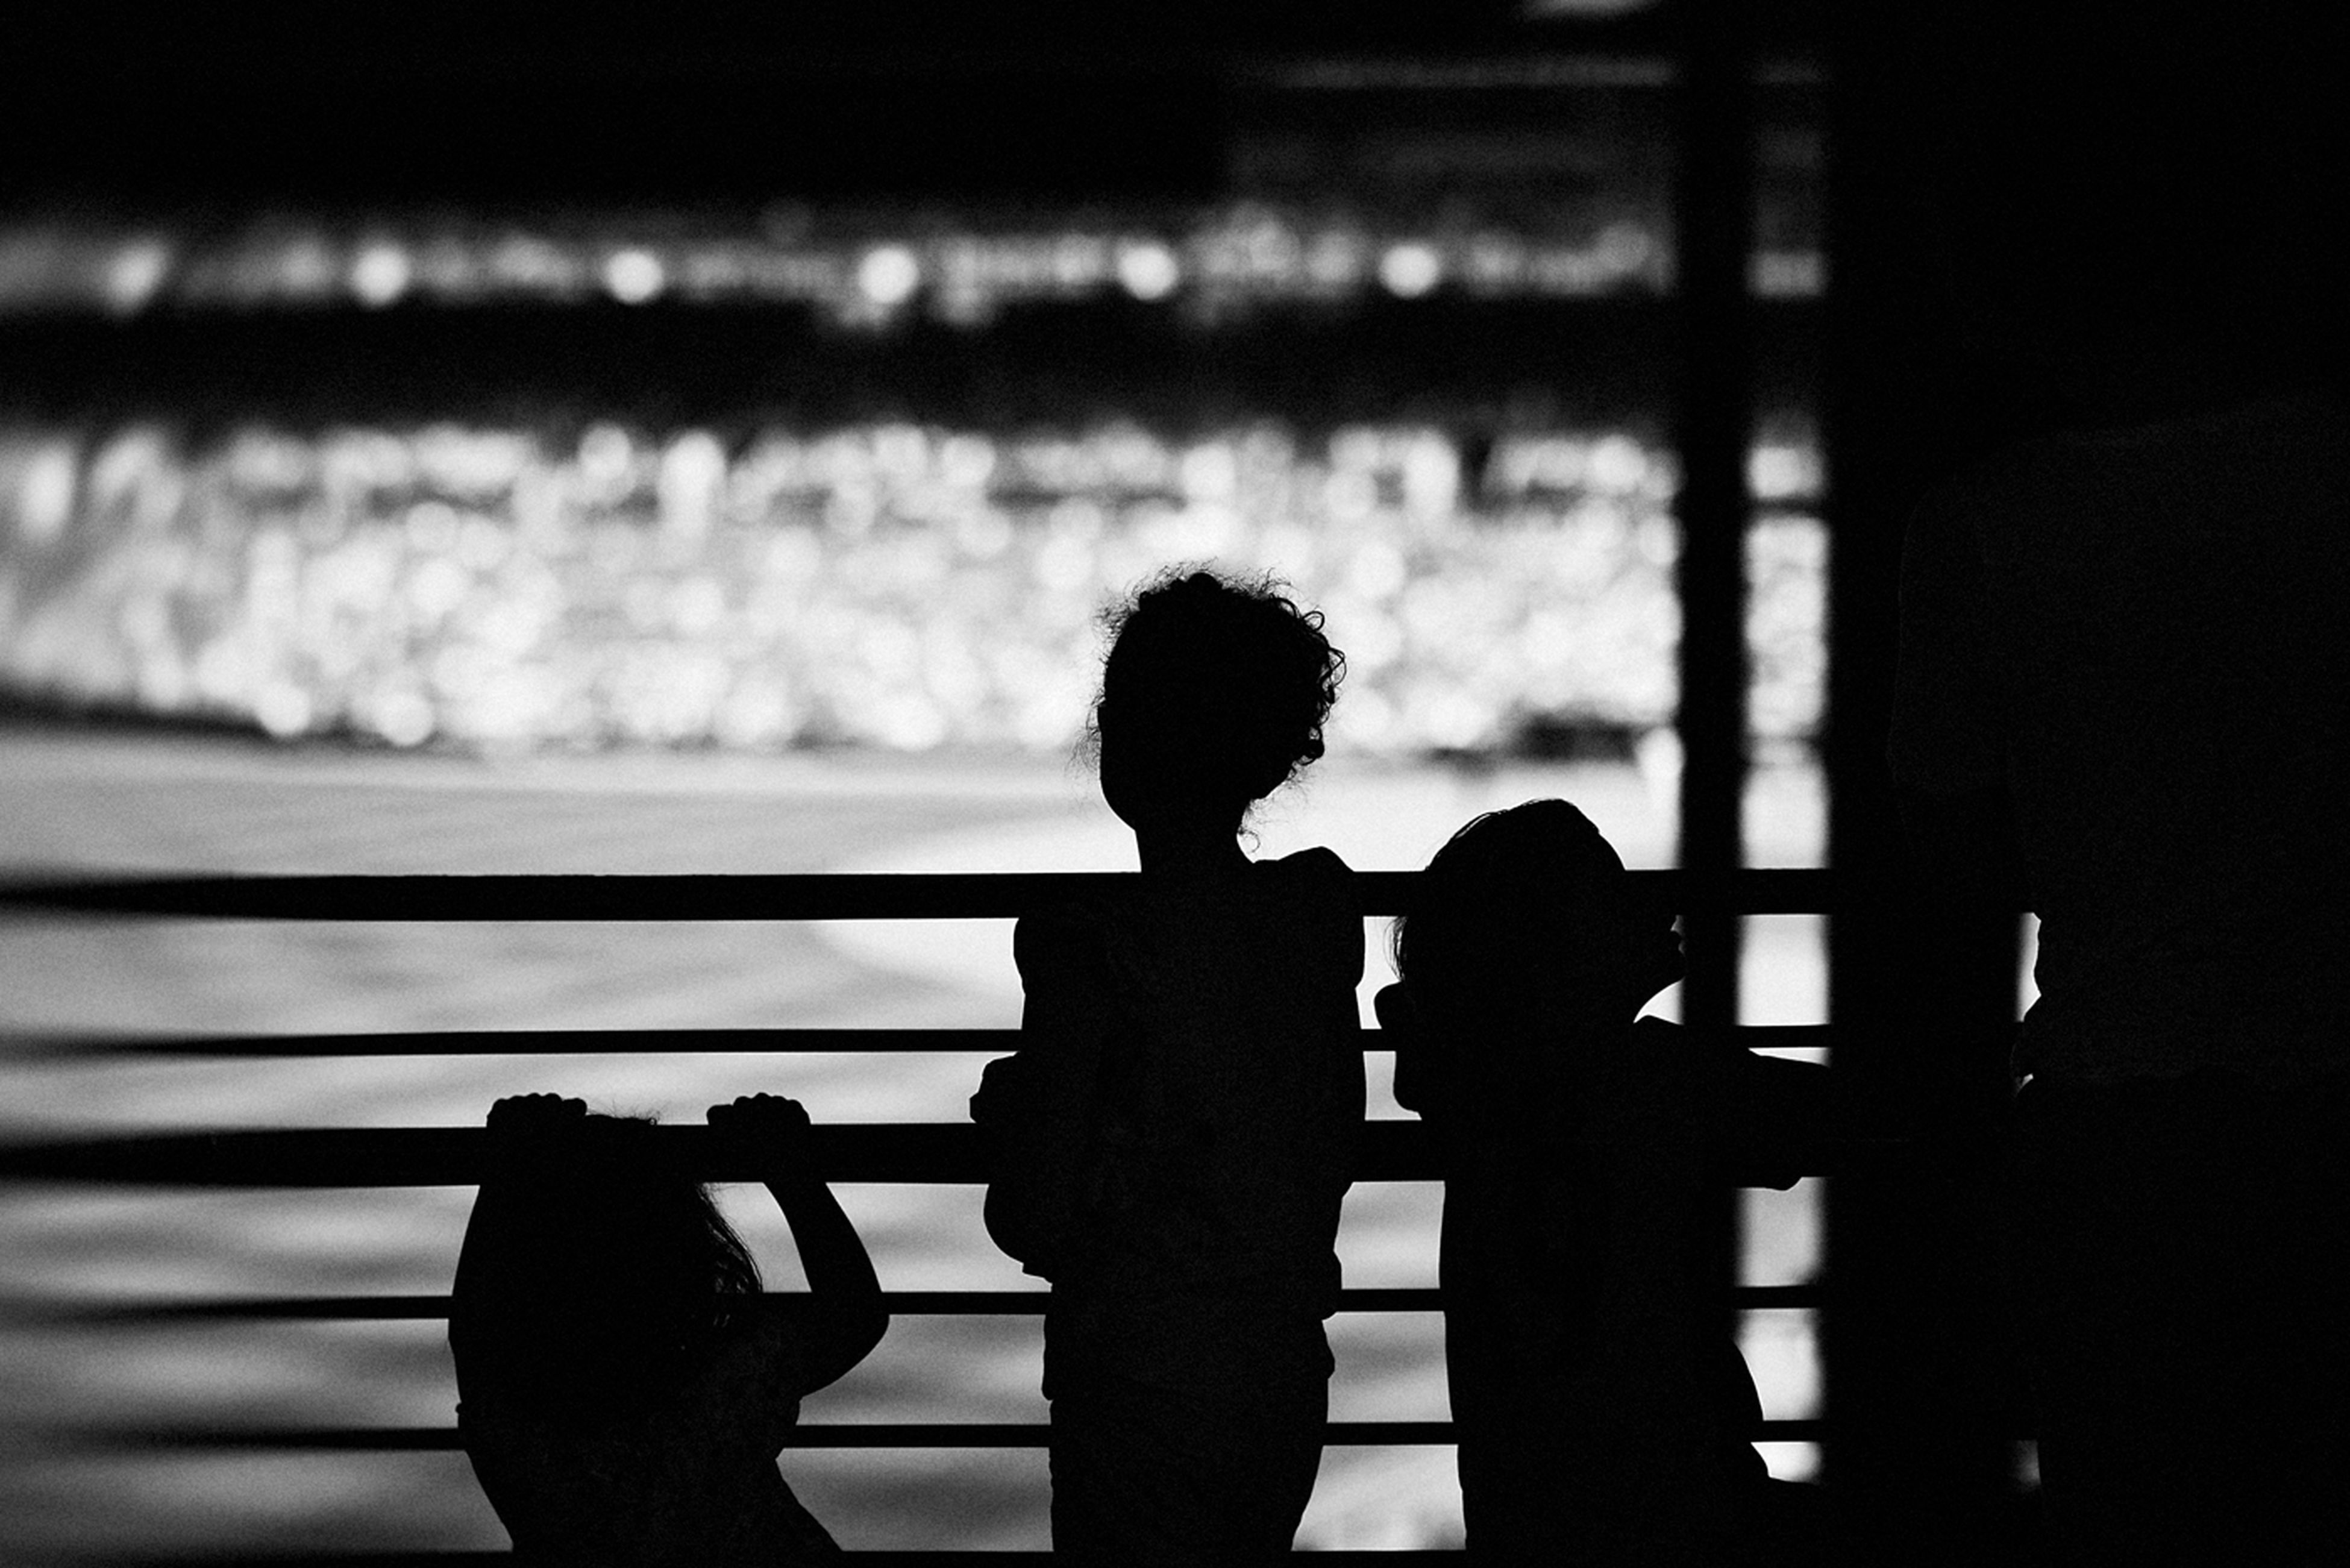 silhouette, indoors, sitting, window, rear view, focus on foreground, outline, waist up, lifestyles, standing, leisure activity, side view, men, shadow, dark, day, selective focus, reflection